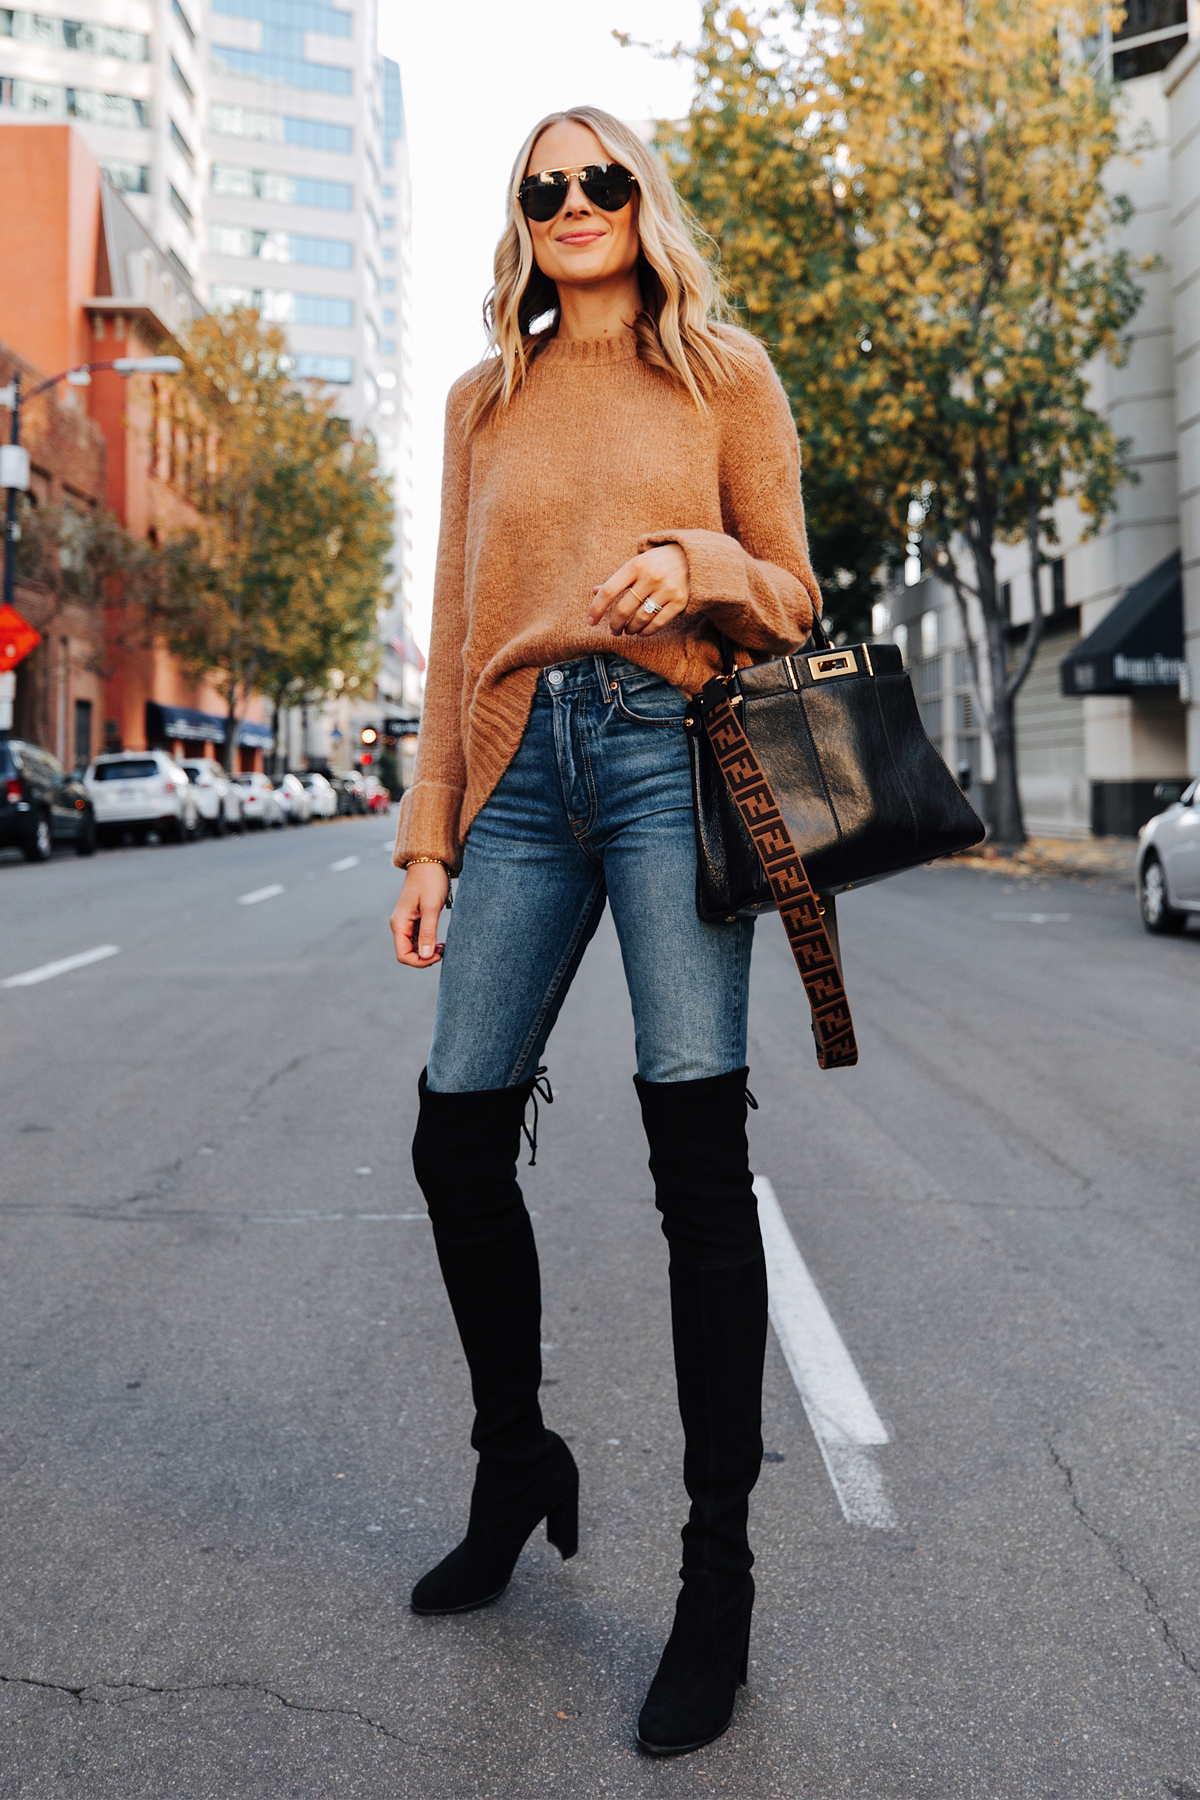 Fashion Jackson Wearing Camel Sweater Stuart Weitzman Black Over the Knee Boots Fendi Peekaboo Black Handbag 1